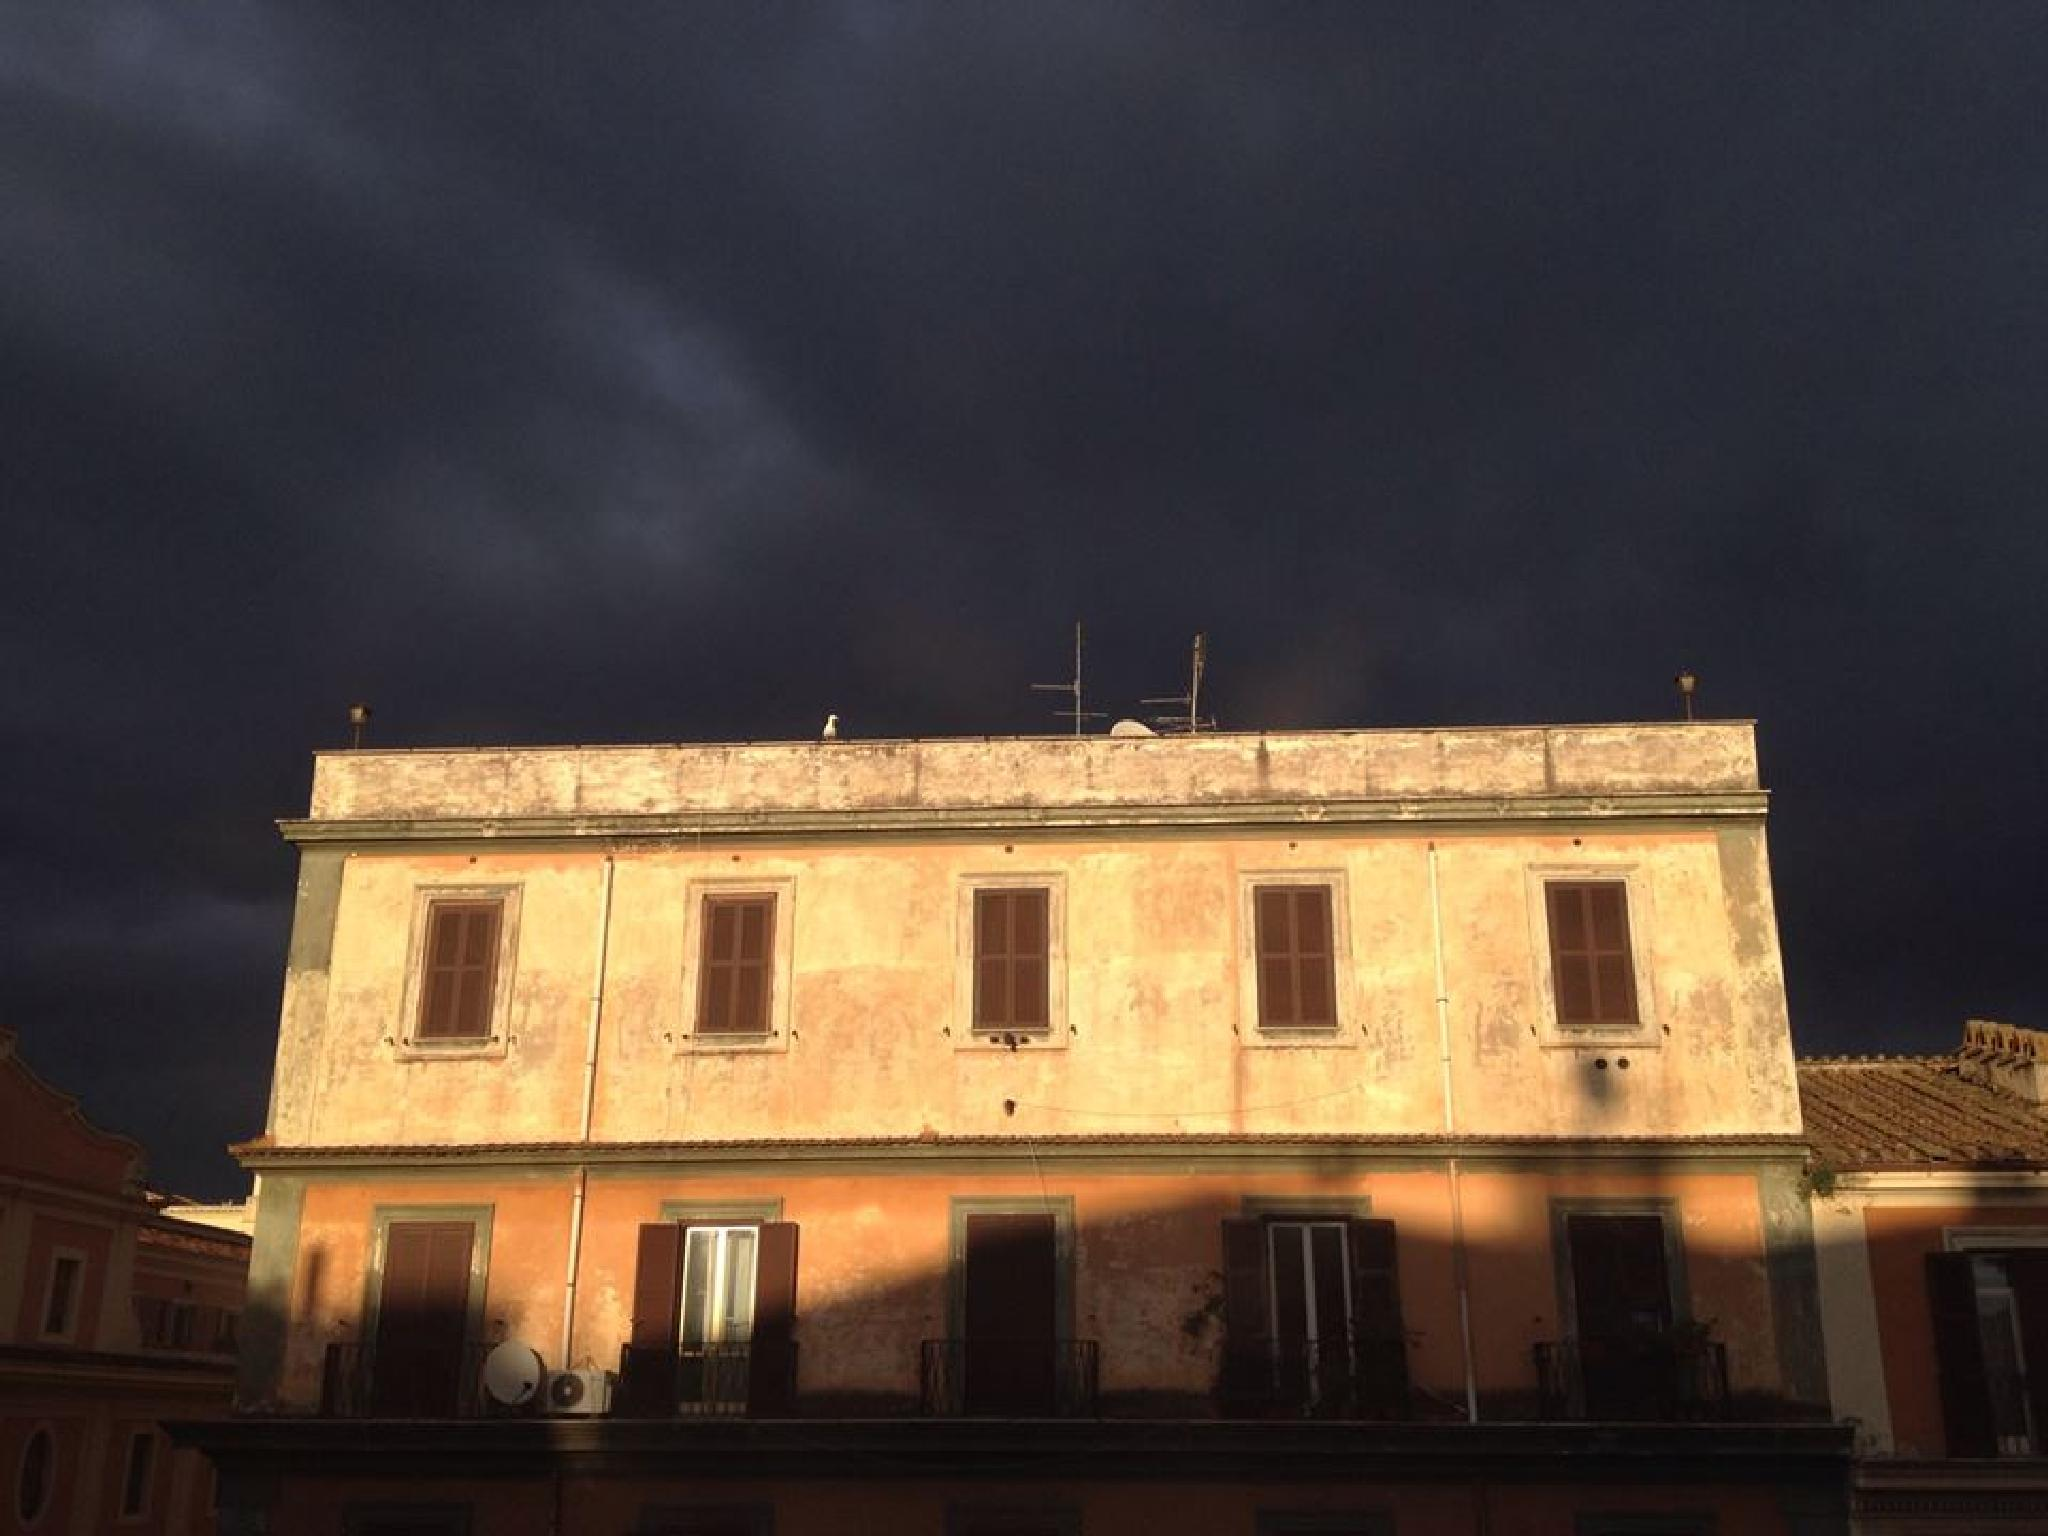 Light and Darkness, Rome. by grossiroma